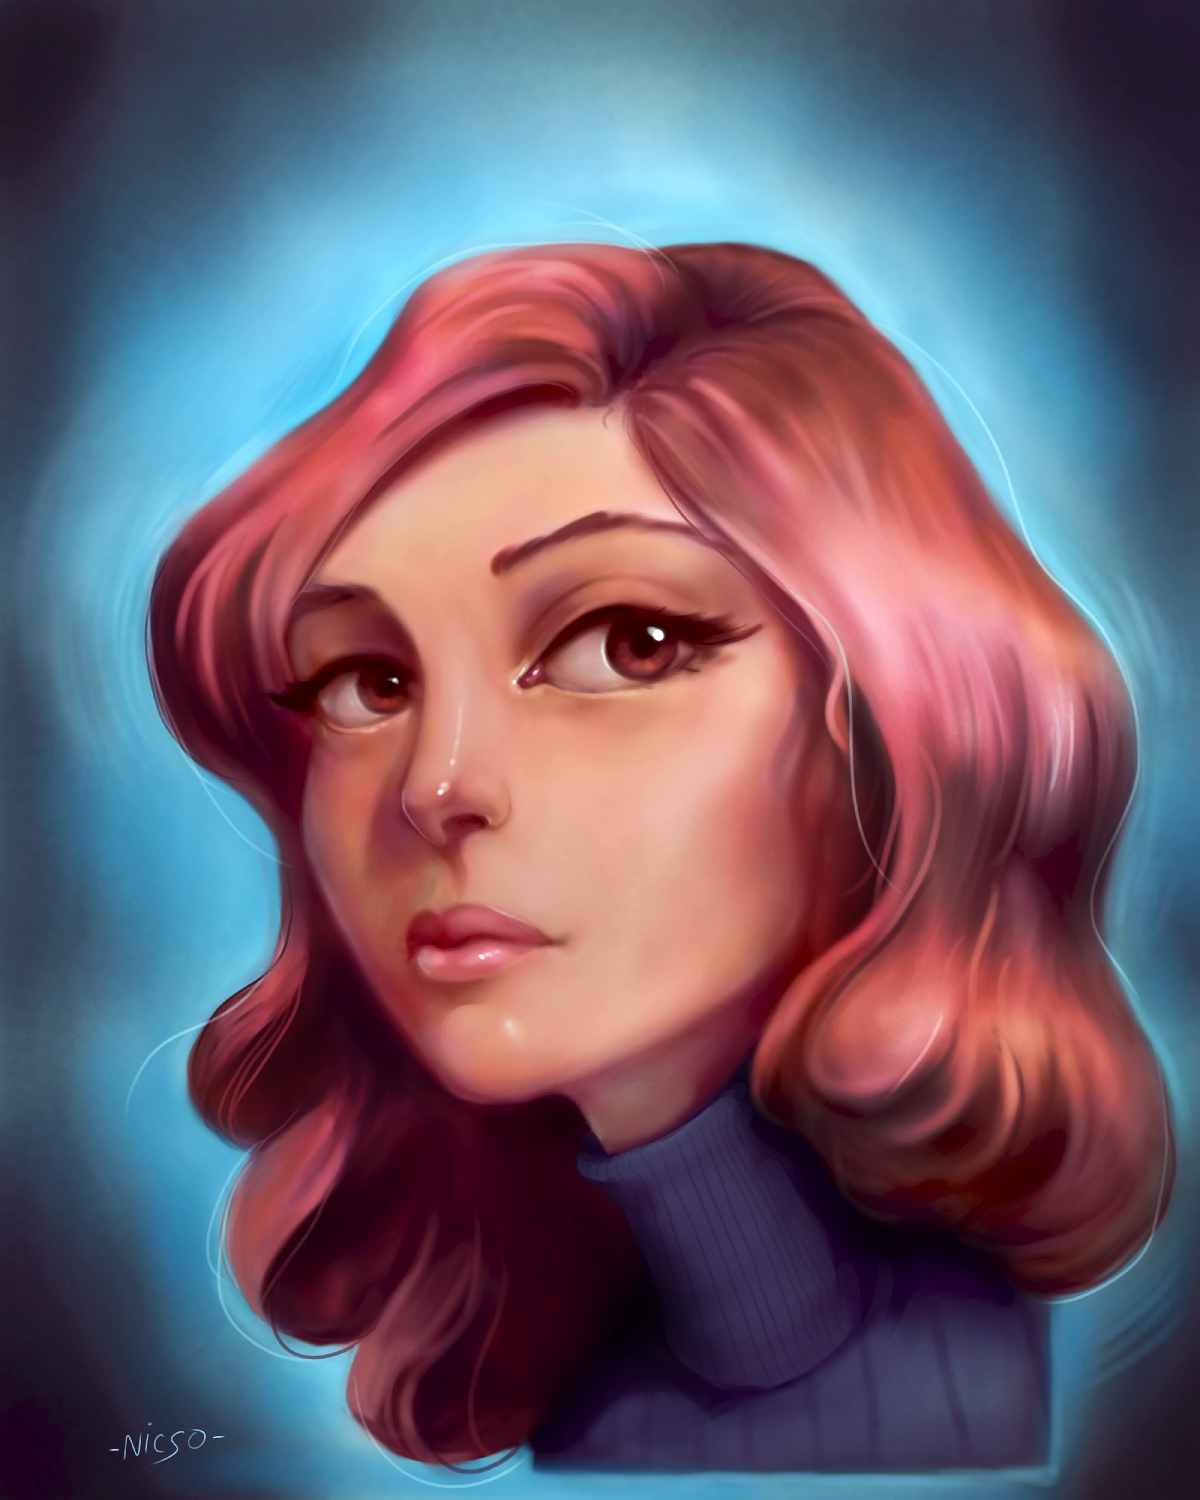 krita_portrait_women65465